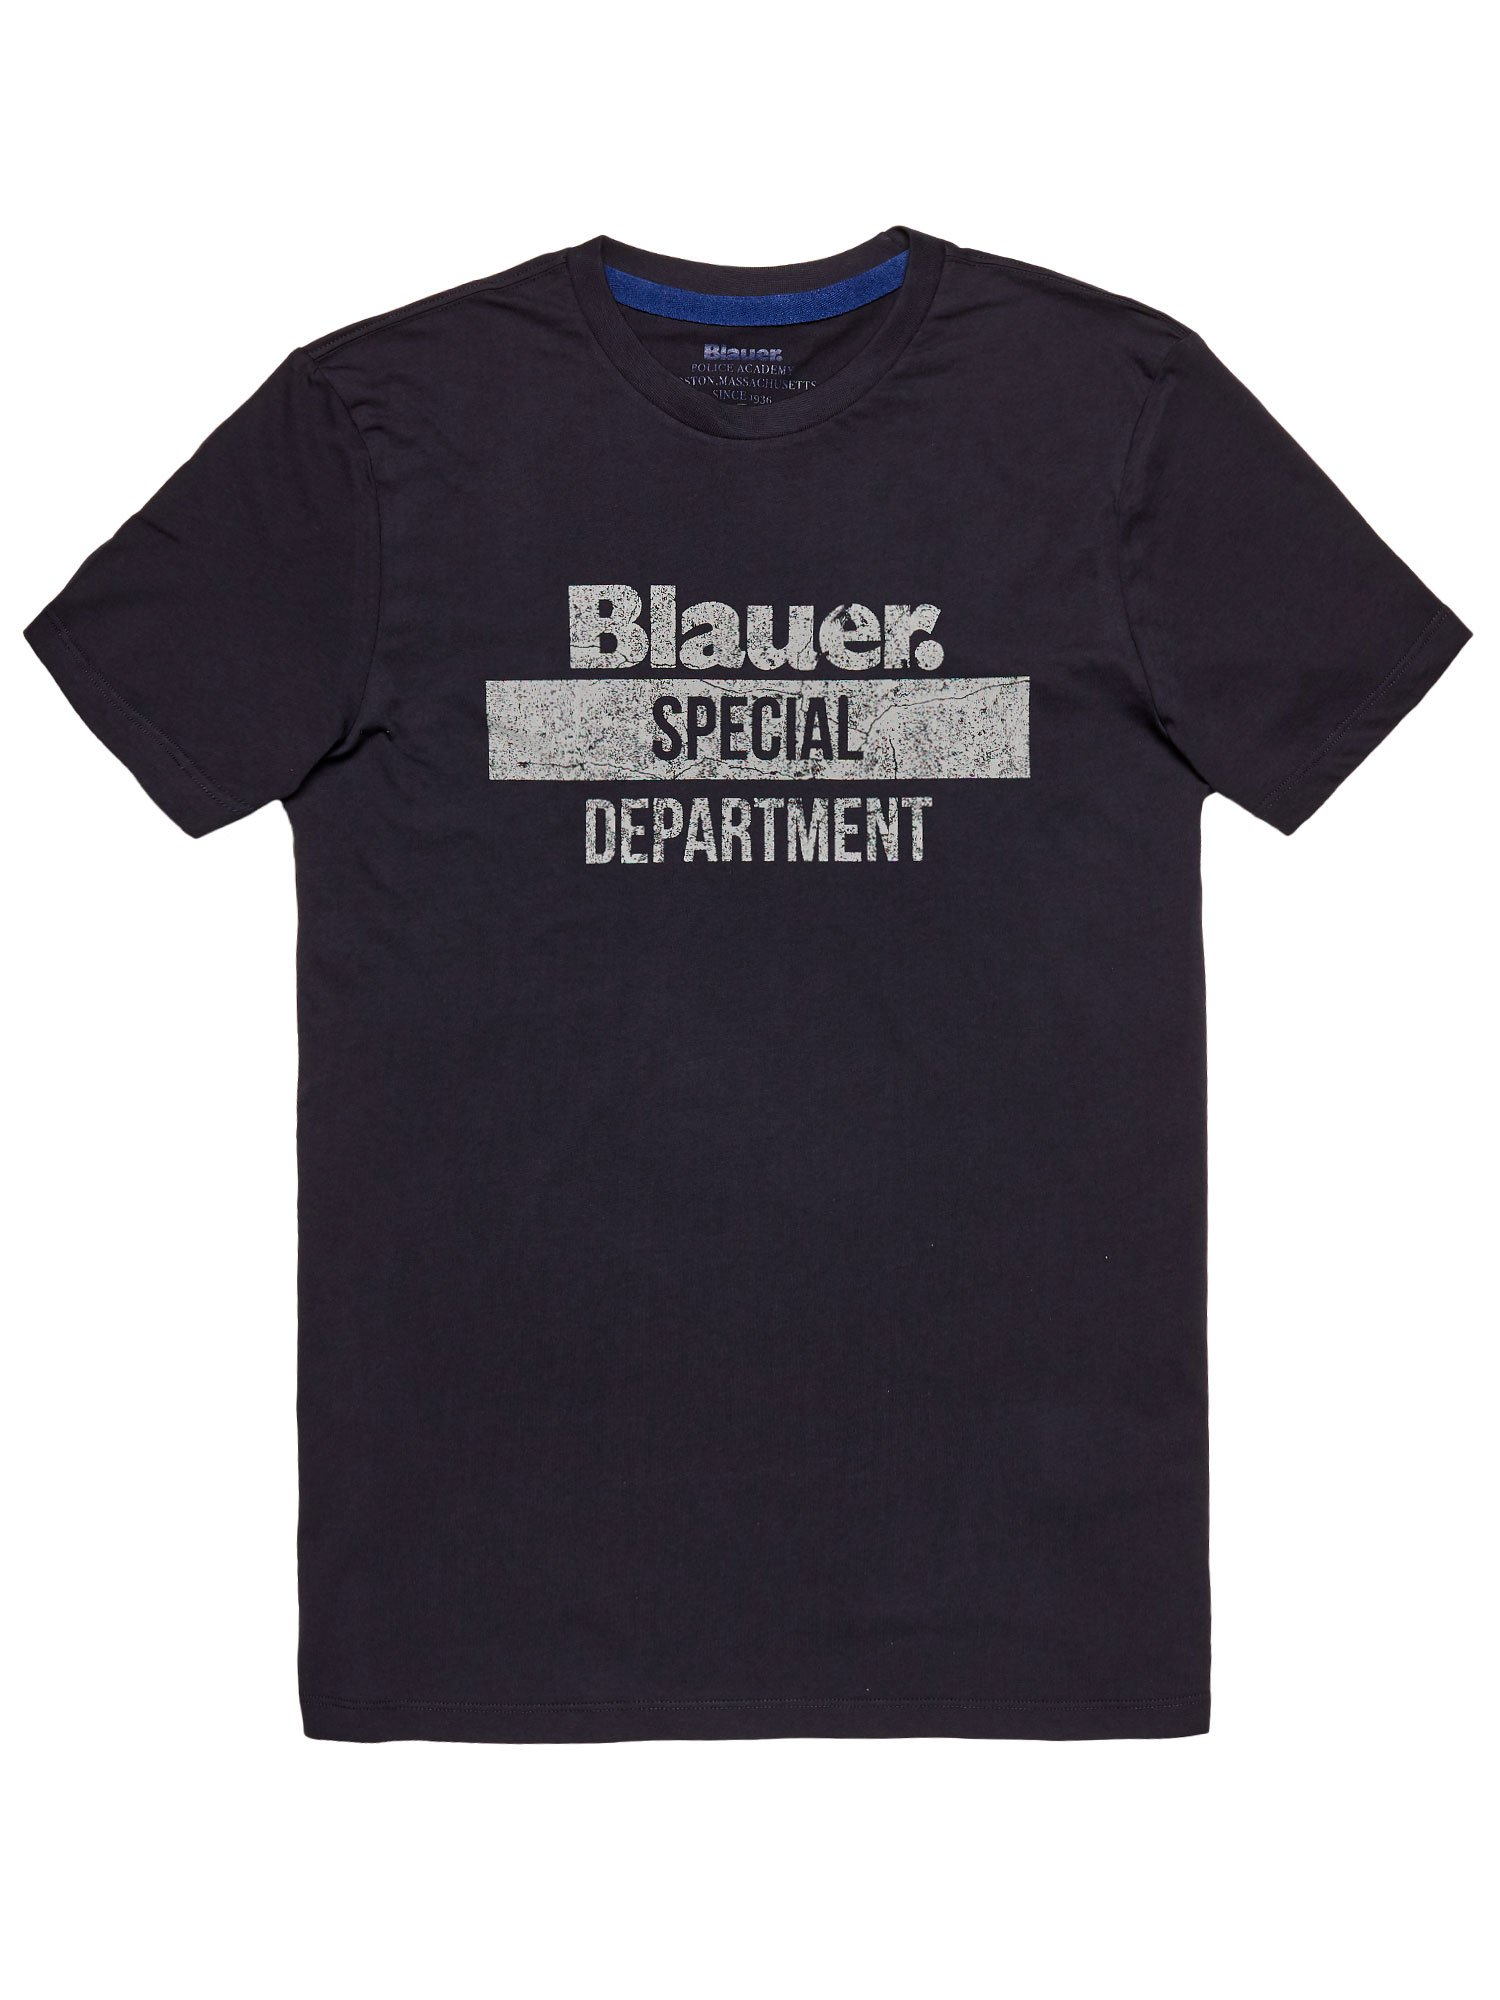 BLAUER SPECIAL DEPARTMENT T-SHIRT - Blauer